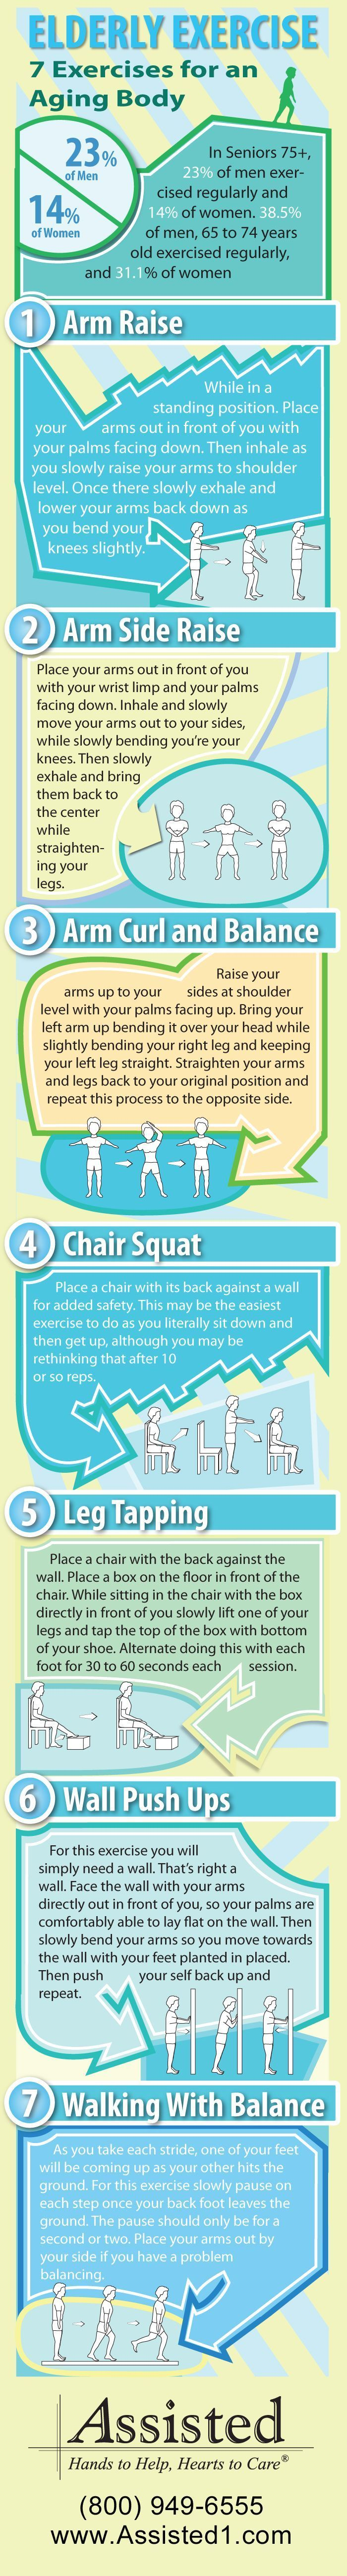 7 #Elderly Exercises to get the Body Moving